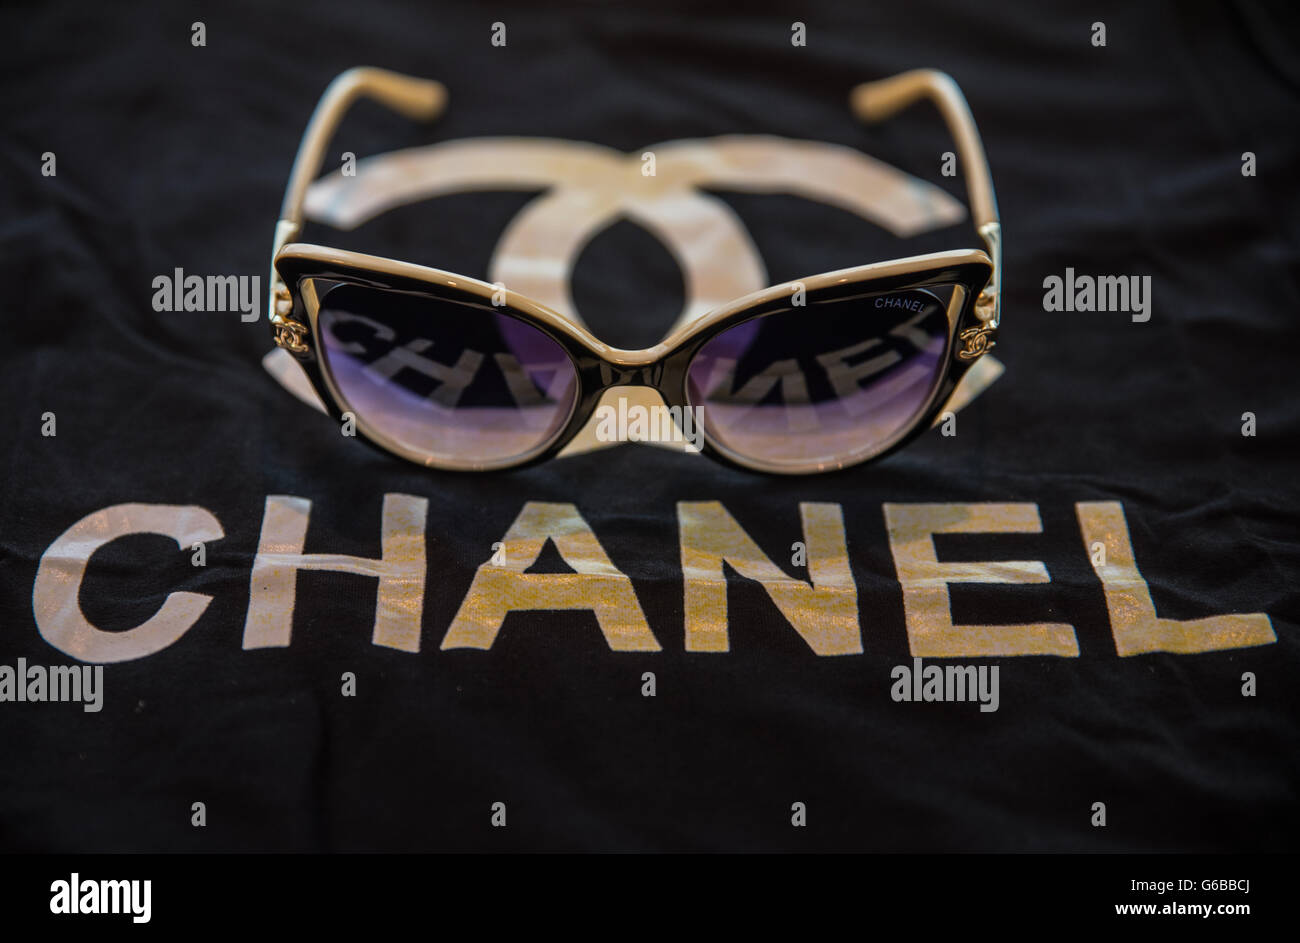 bdecc94fd3b A pair of counterfeit Chanel sunglasses seen on top of a knockoff t-shirt of